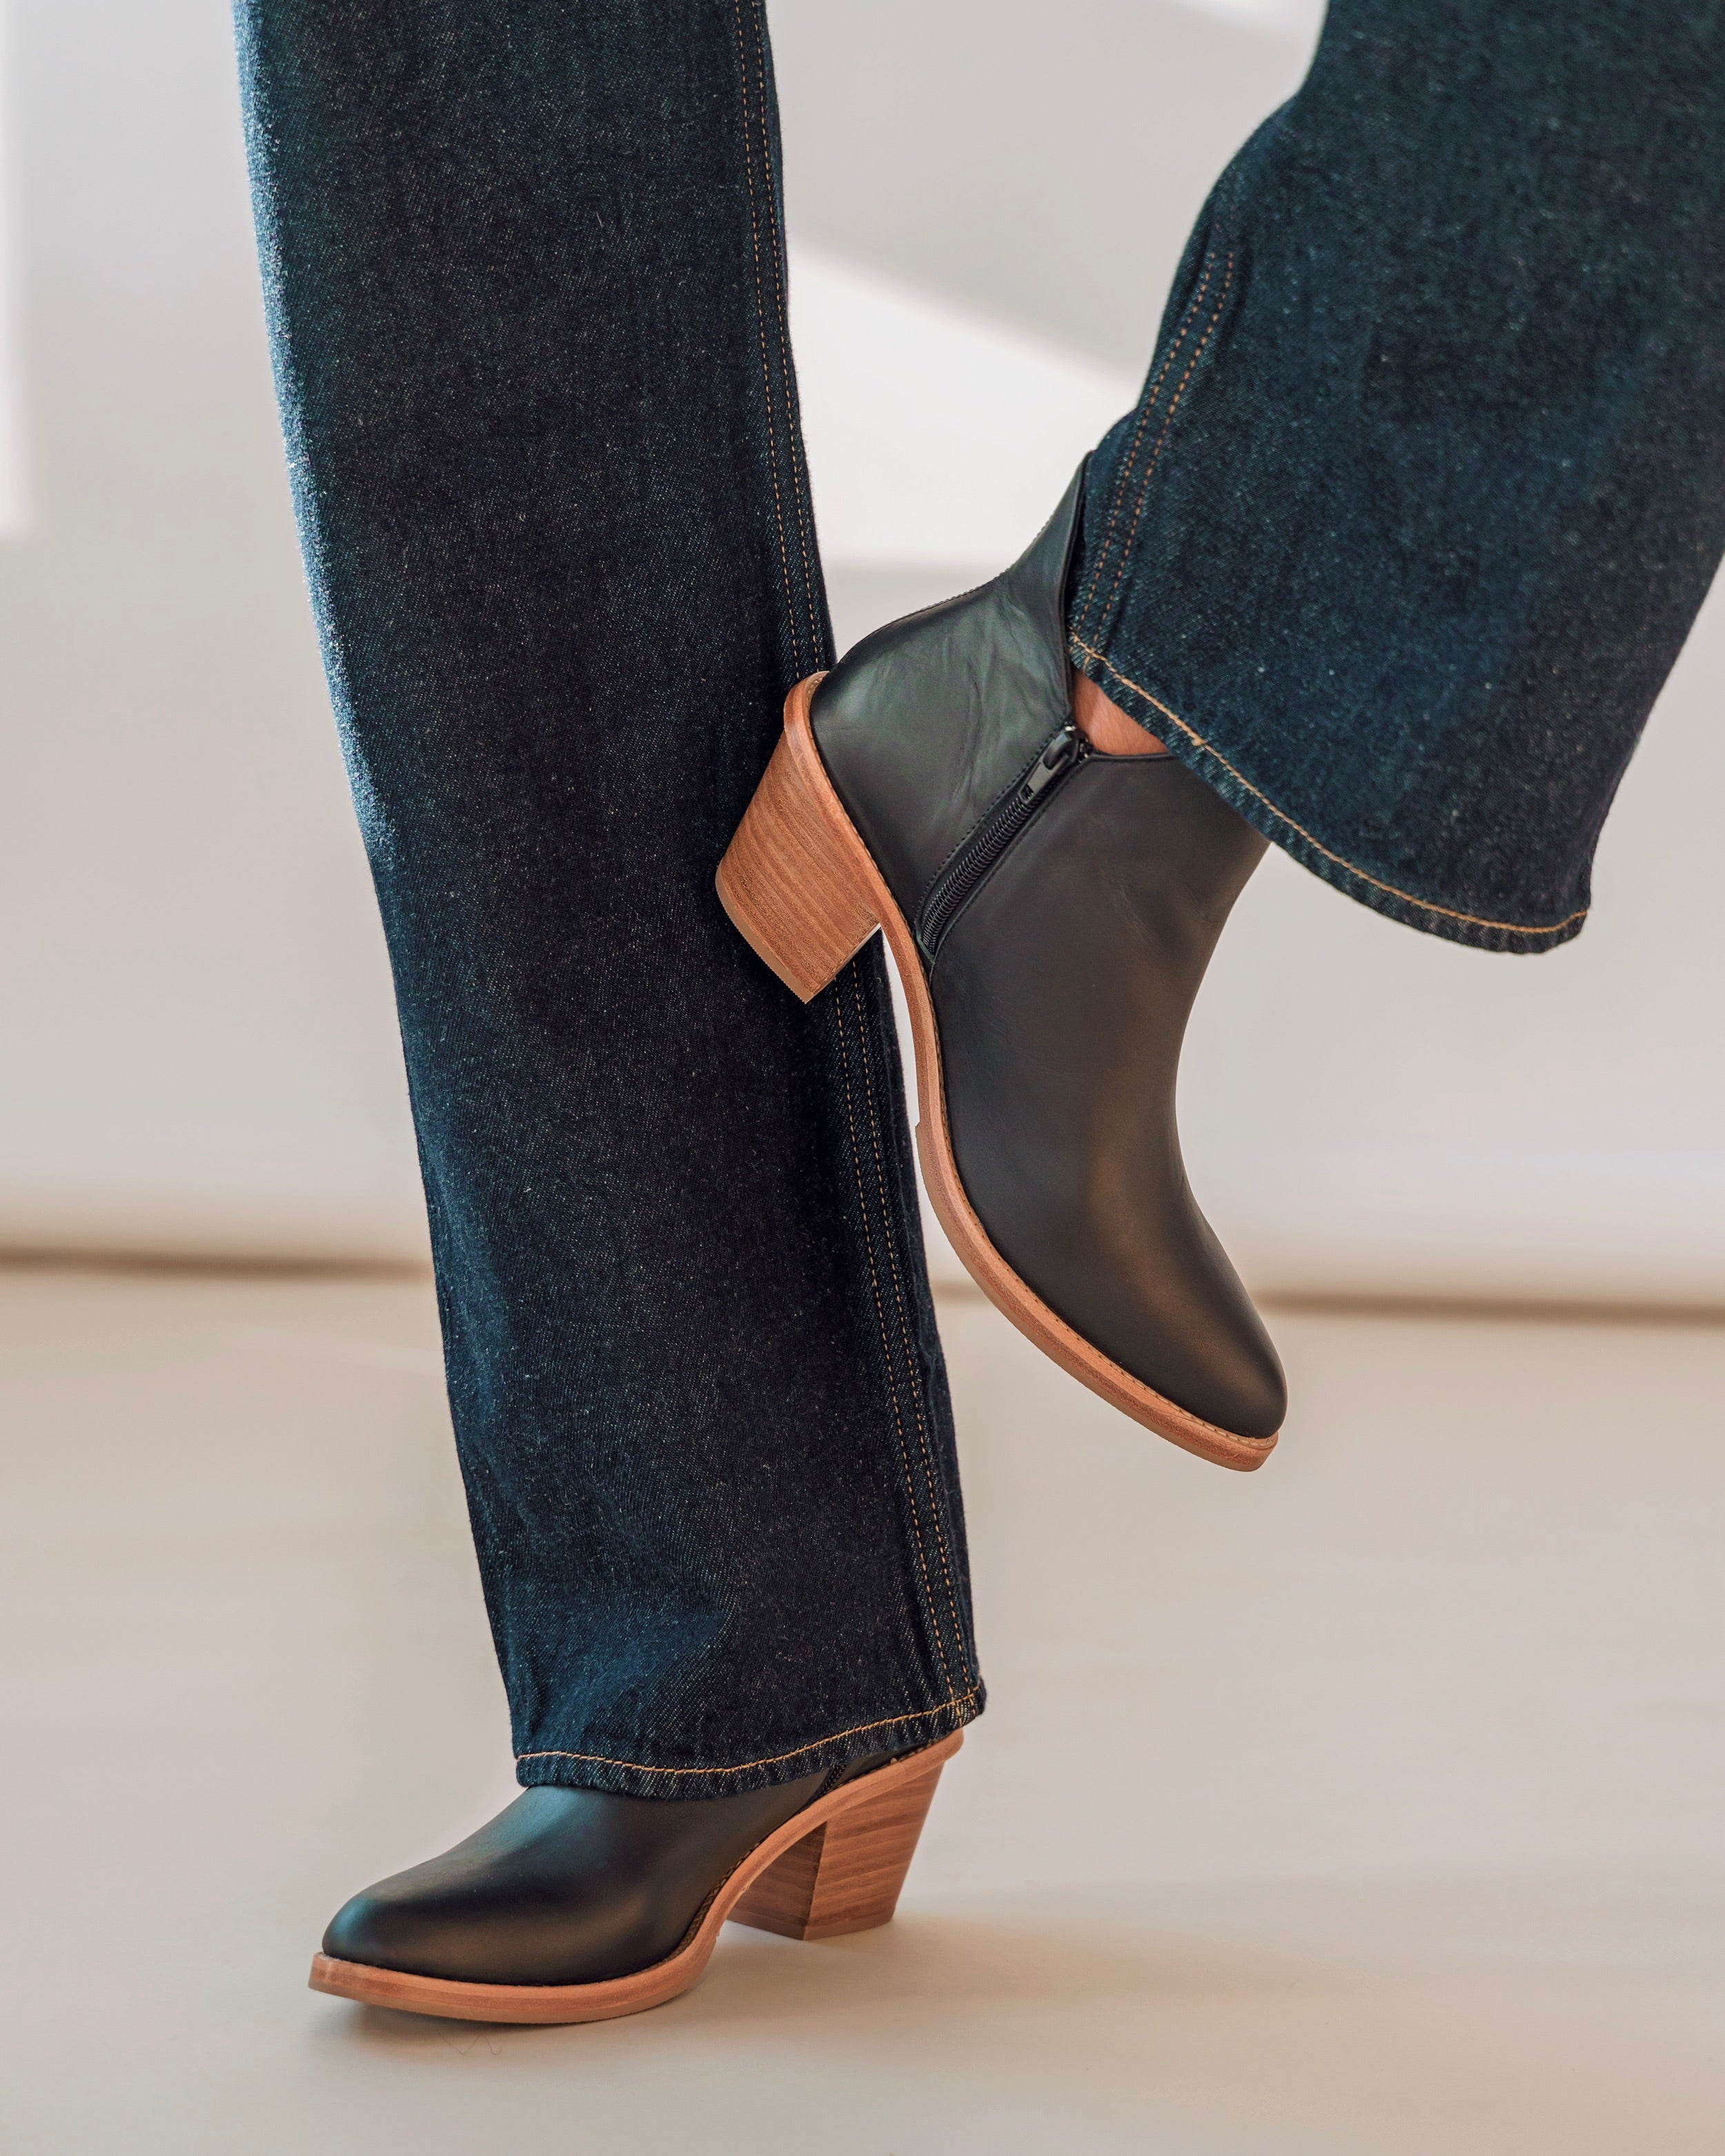 Ankle boots with bootcut jeans